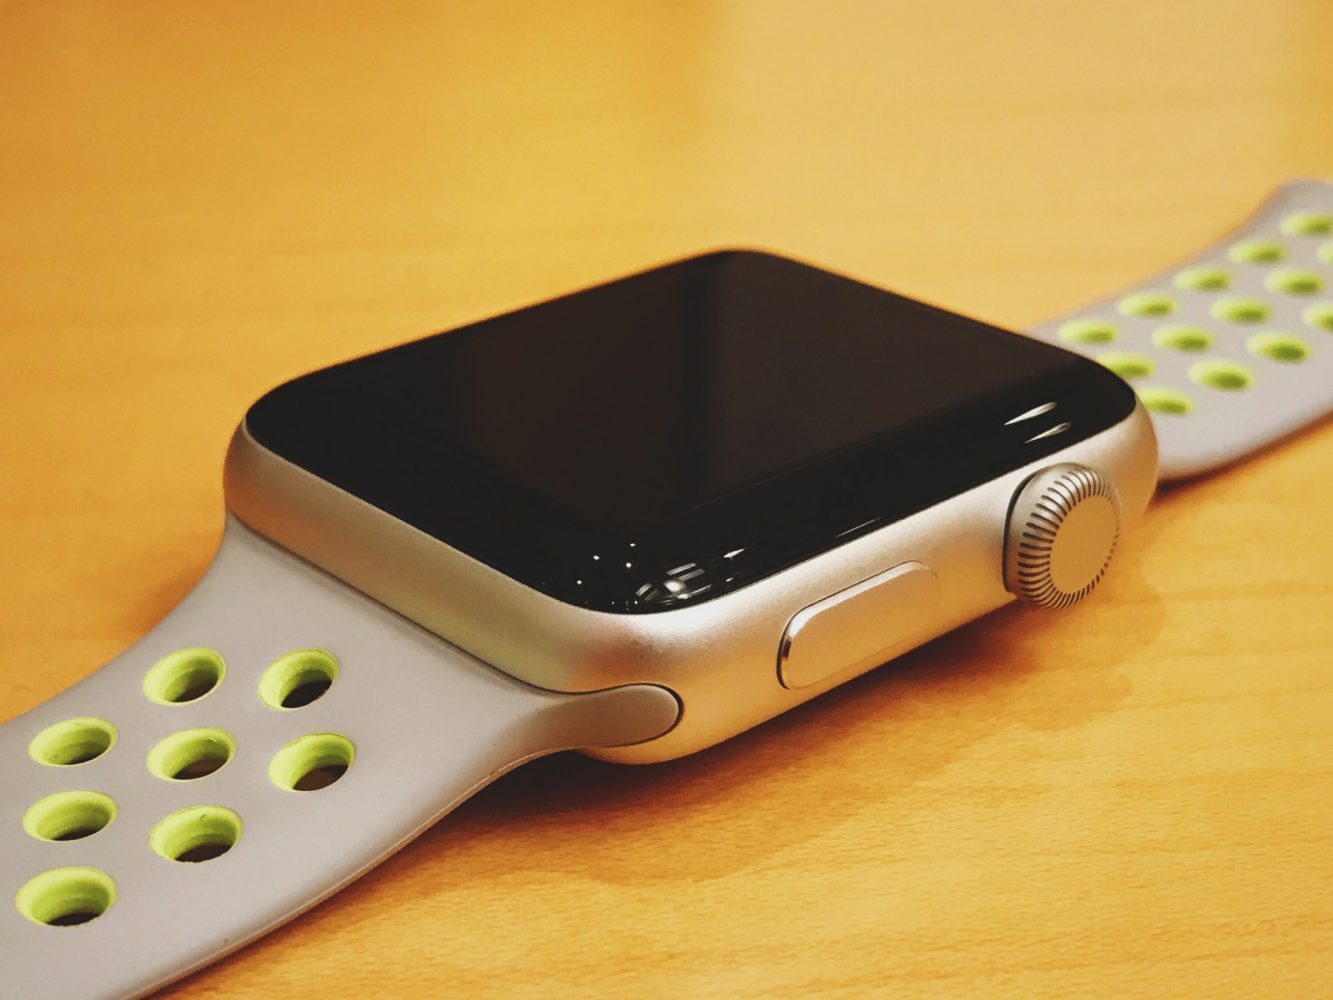 Table Runners Target Apple Watch Nike+ Review